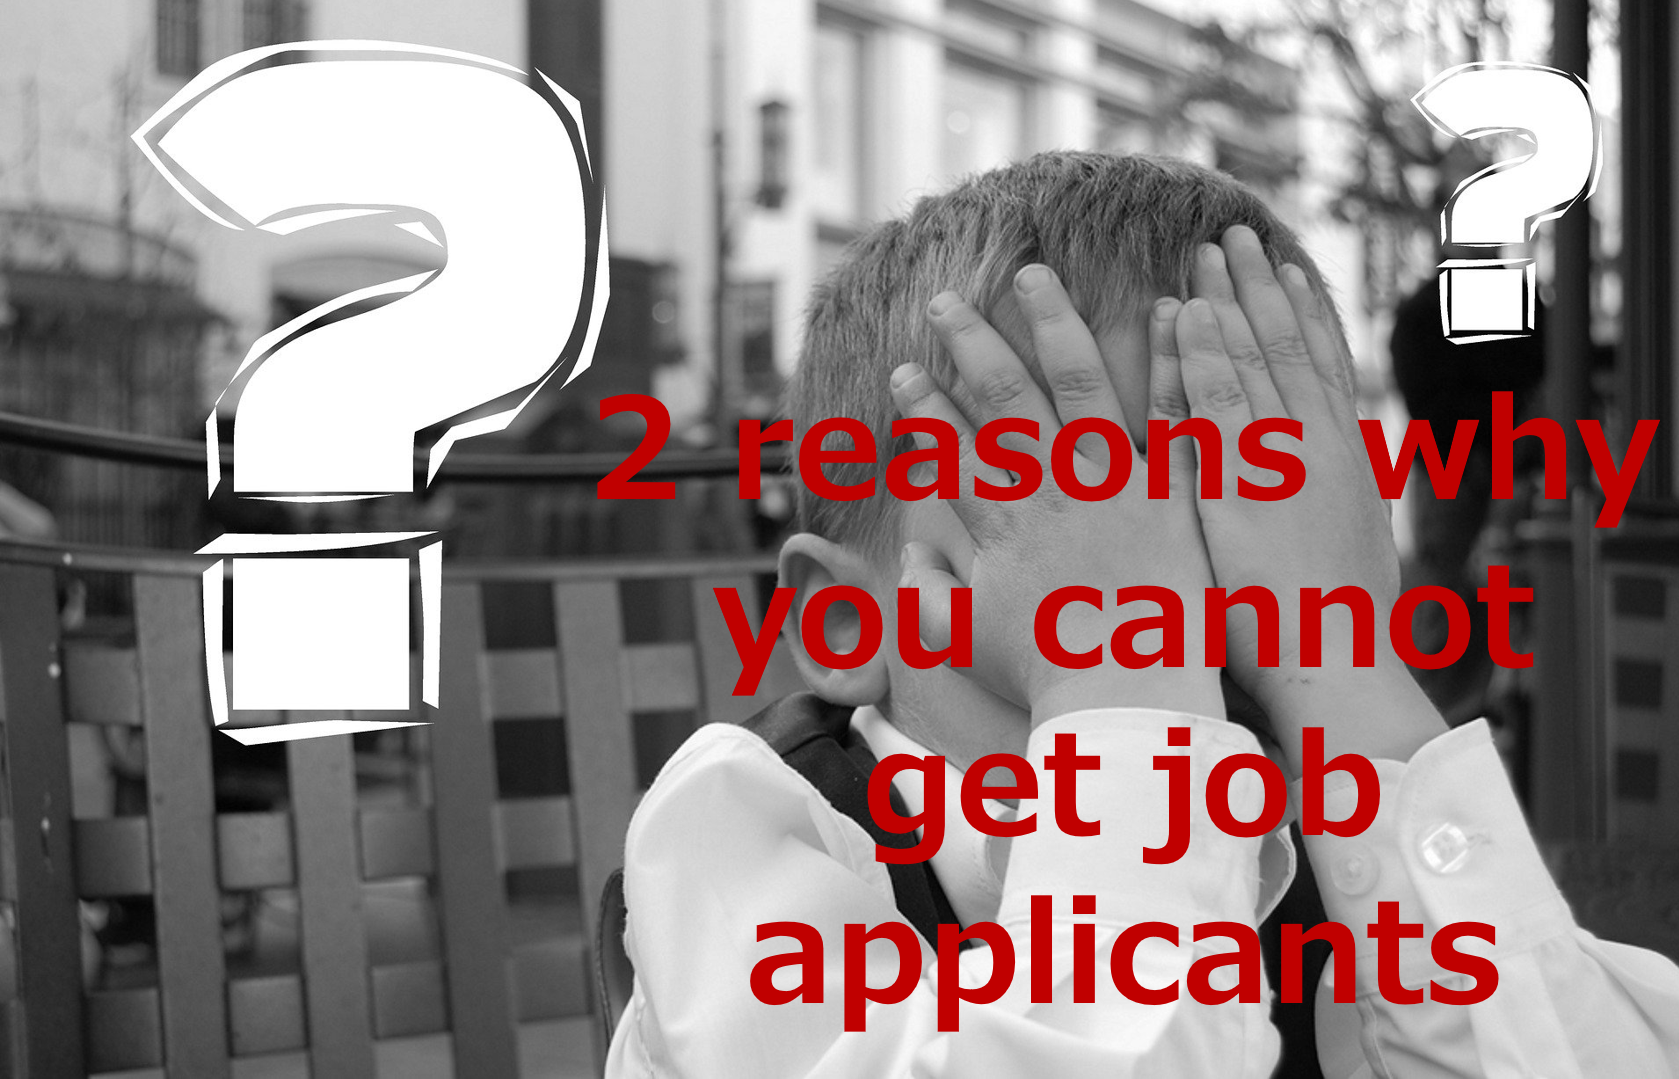 2 reasons why you cannot get job applicants